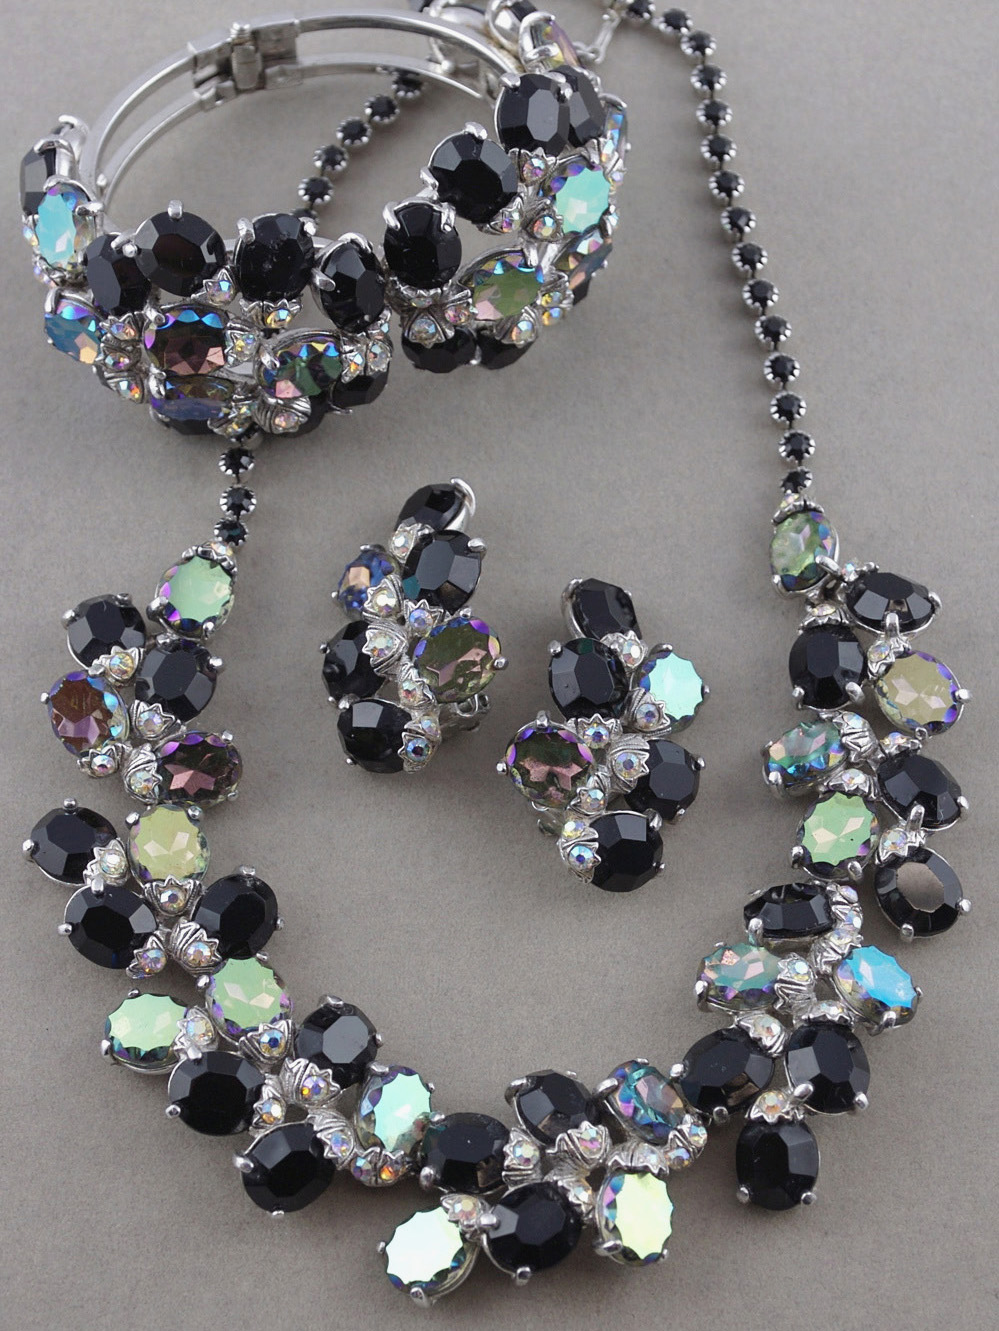 Schiaparelli vintage parure 1950s necklace bracelet and earrings black rhinestones